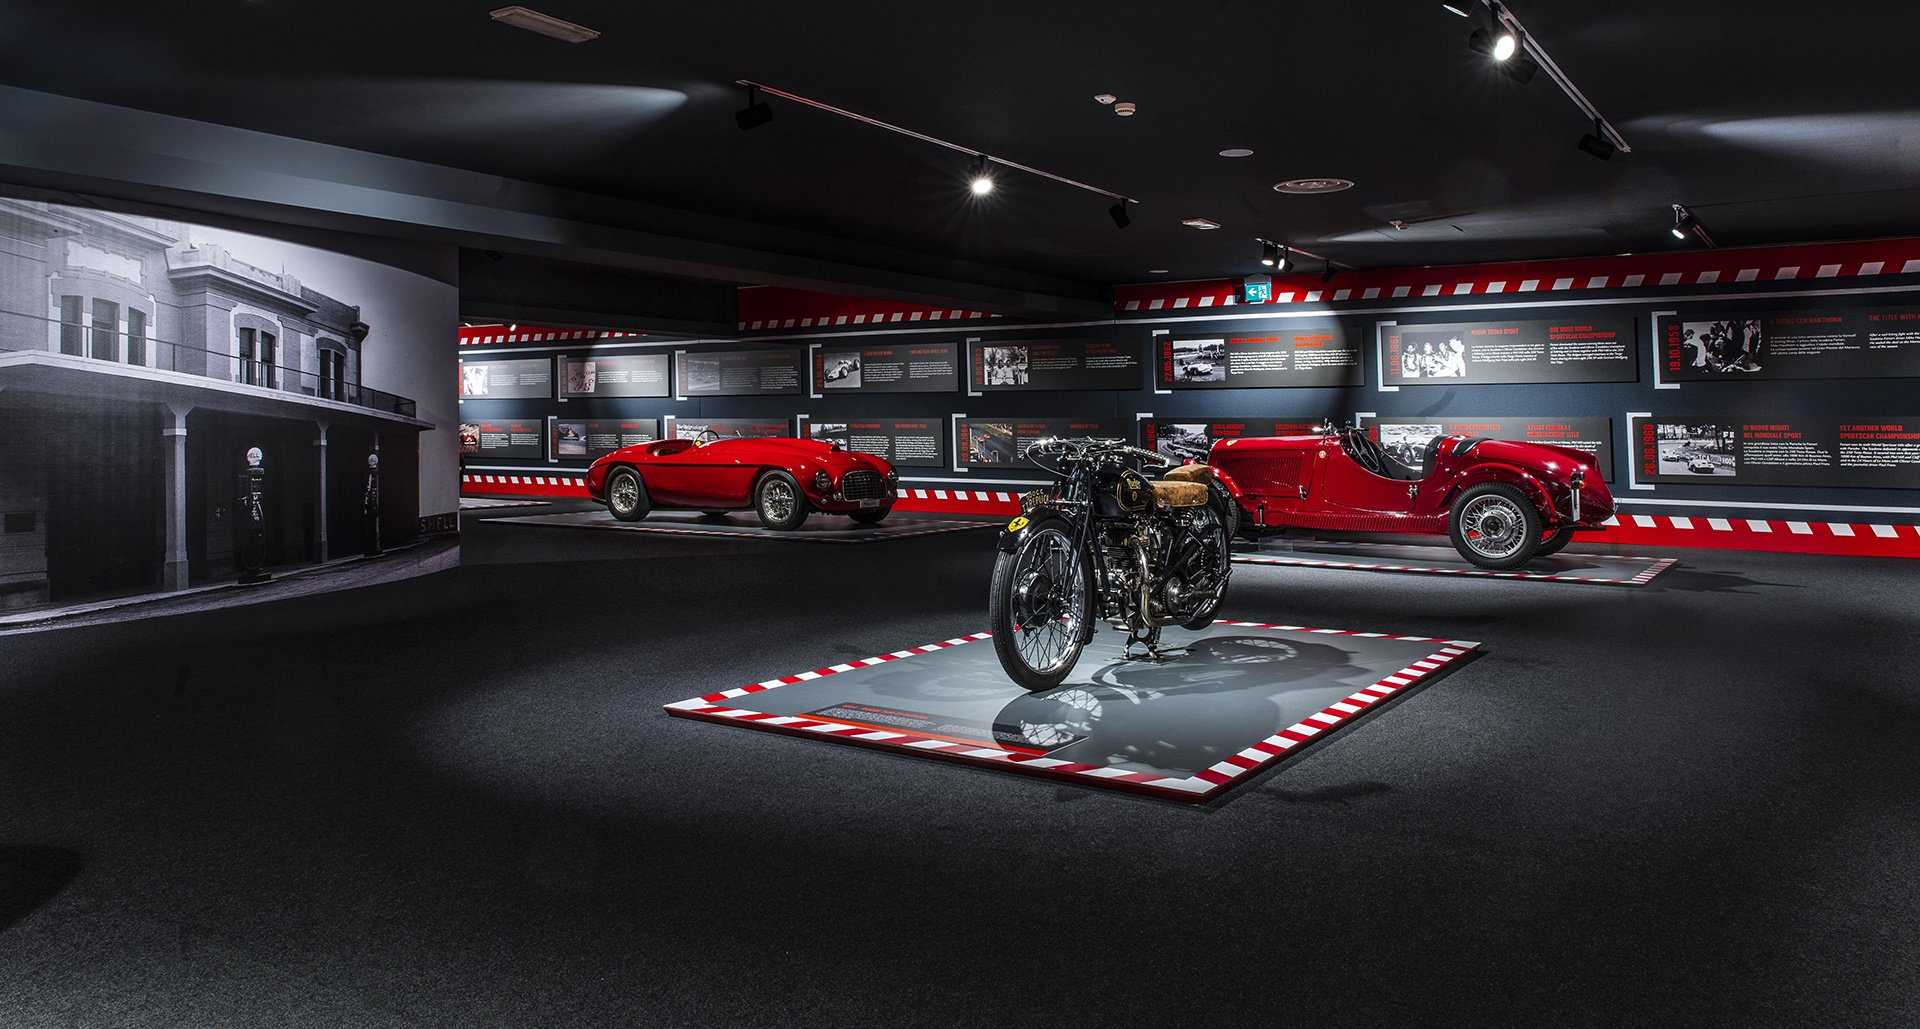 Ferrari-90-Years-Of-Racing-Special-Exhibition-4